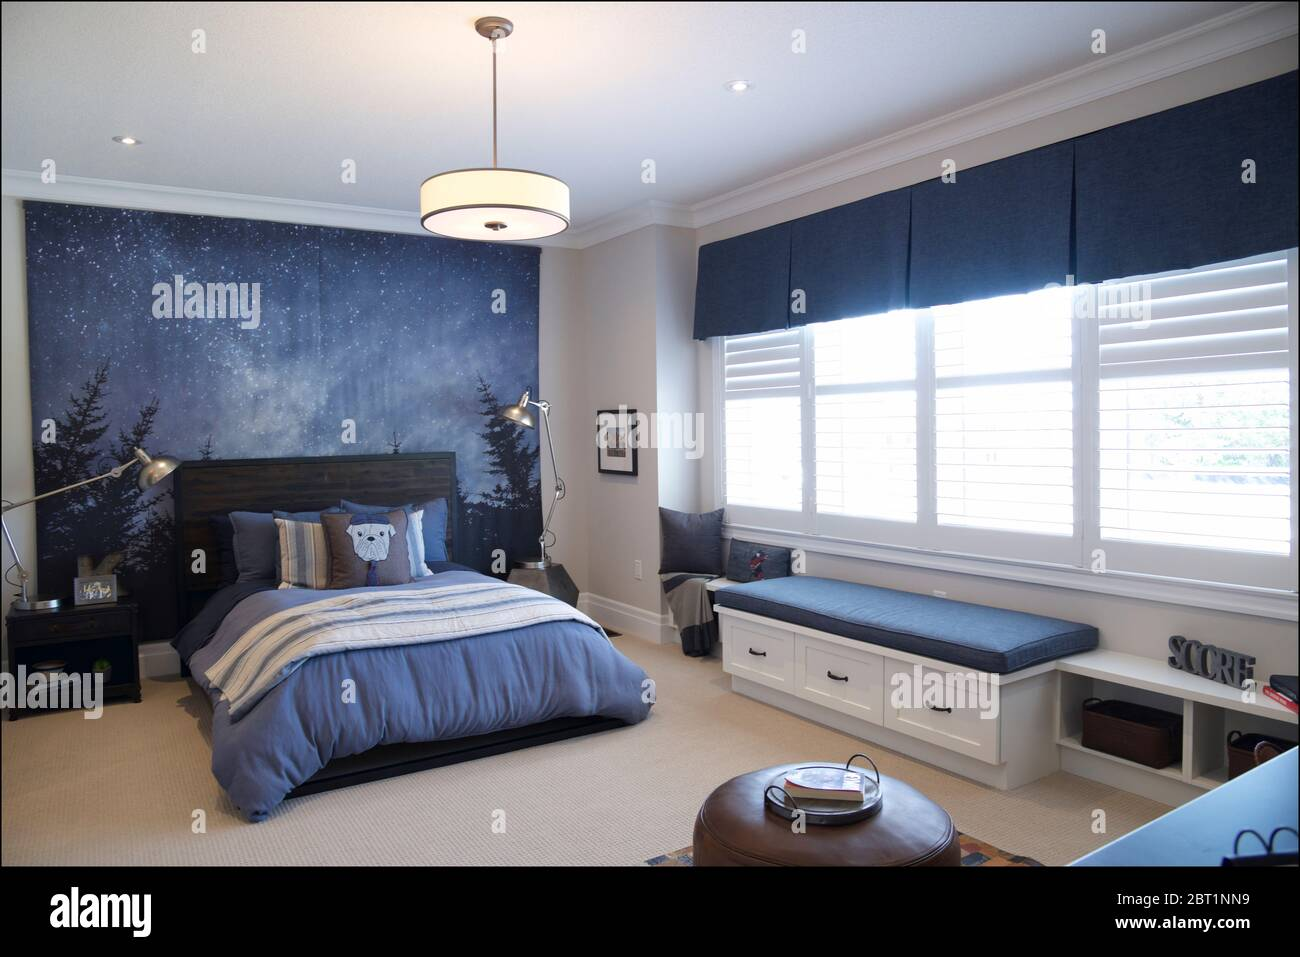 Kleinburg Ontario Canada 08 31 2019 Bedroom Interior Home Architecture Photos Of The Bedroom Interior Stock Photo Alamy